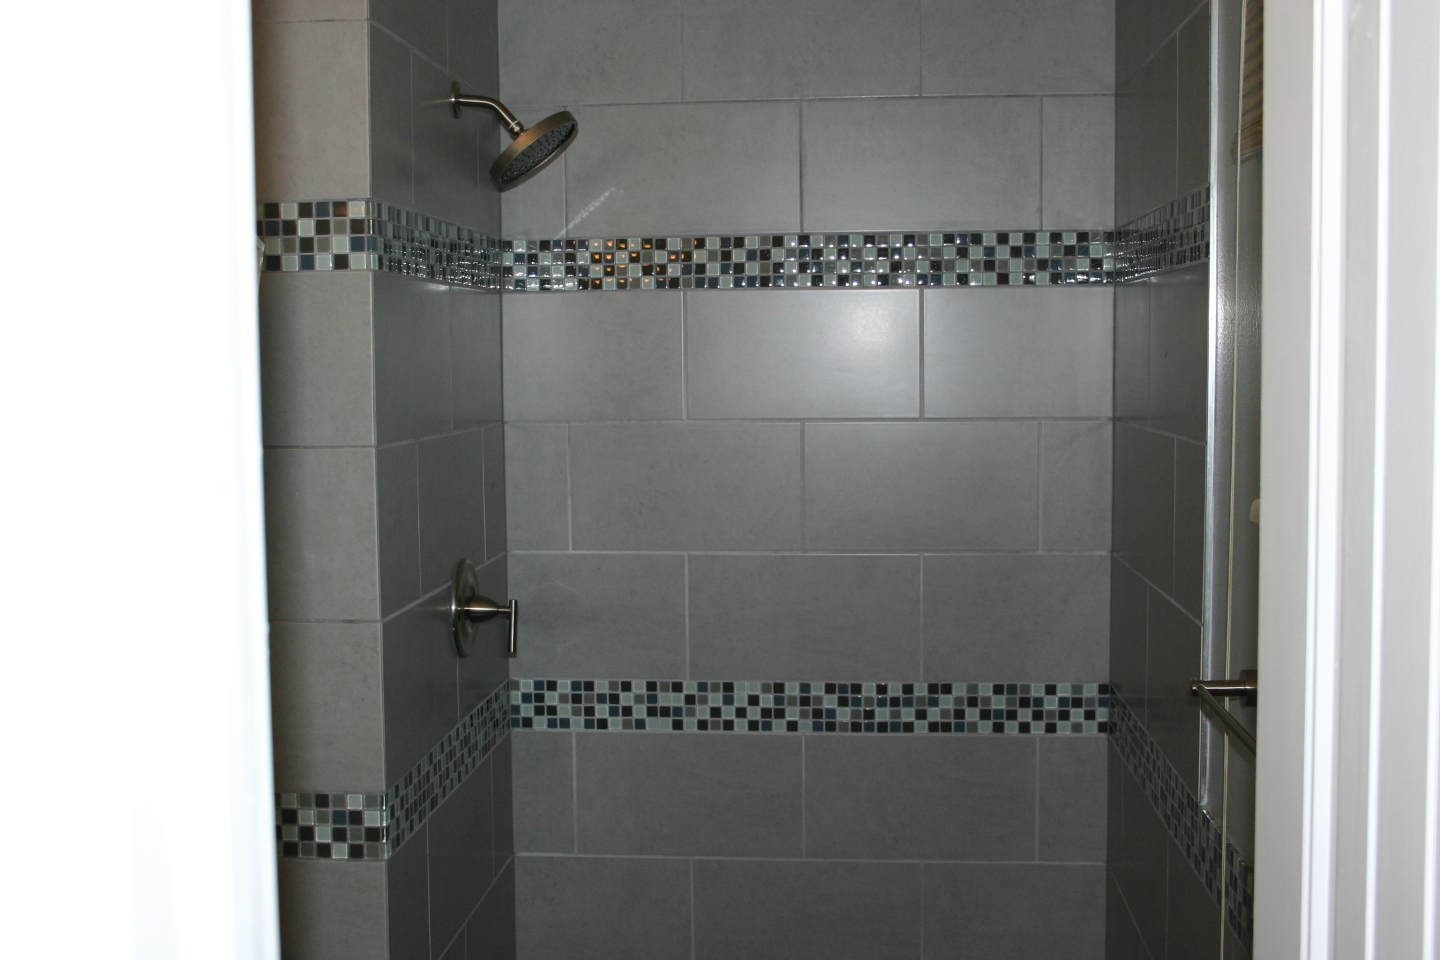 tiled bathrooms designs. Amusing-gray-color-wall-tile-bathroom-design-ideas- Tiled Bathrooms Designs D